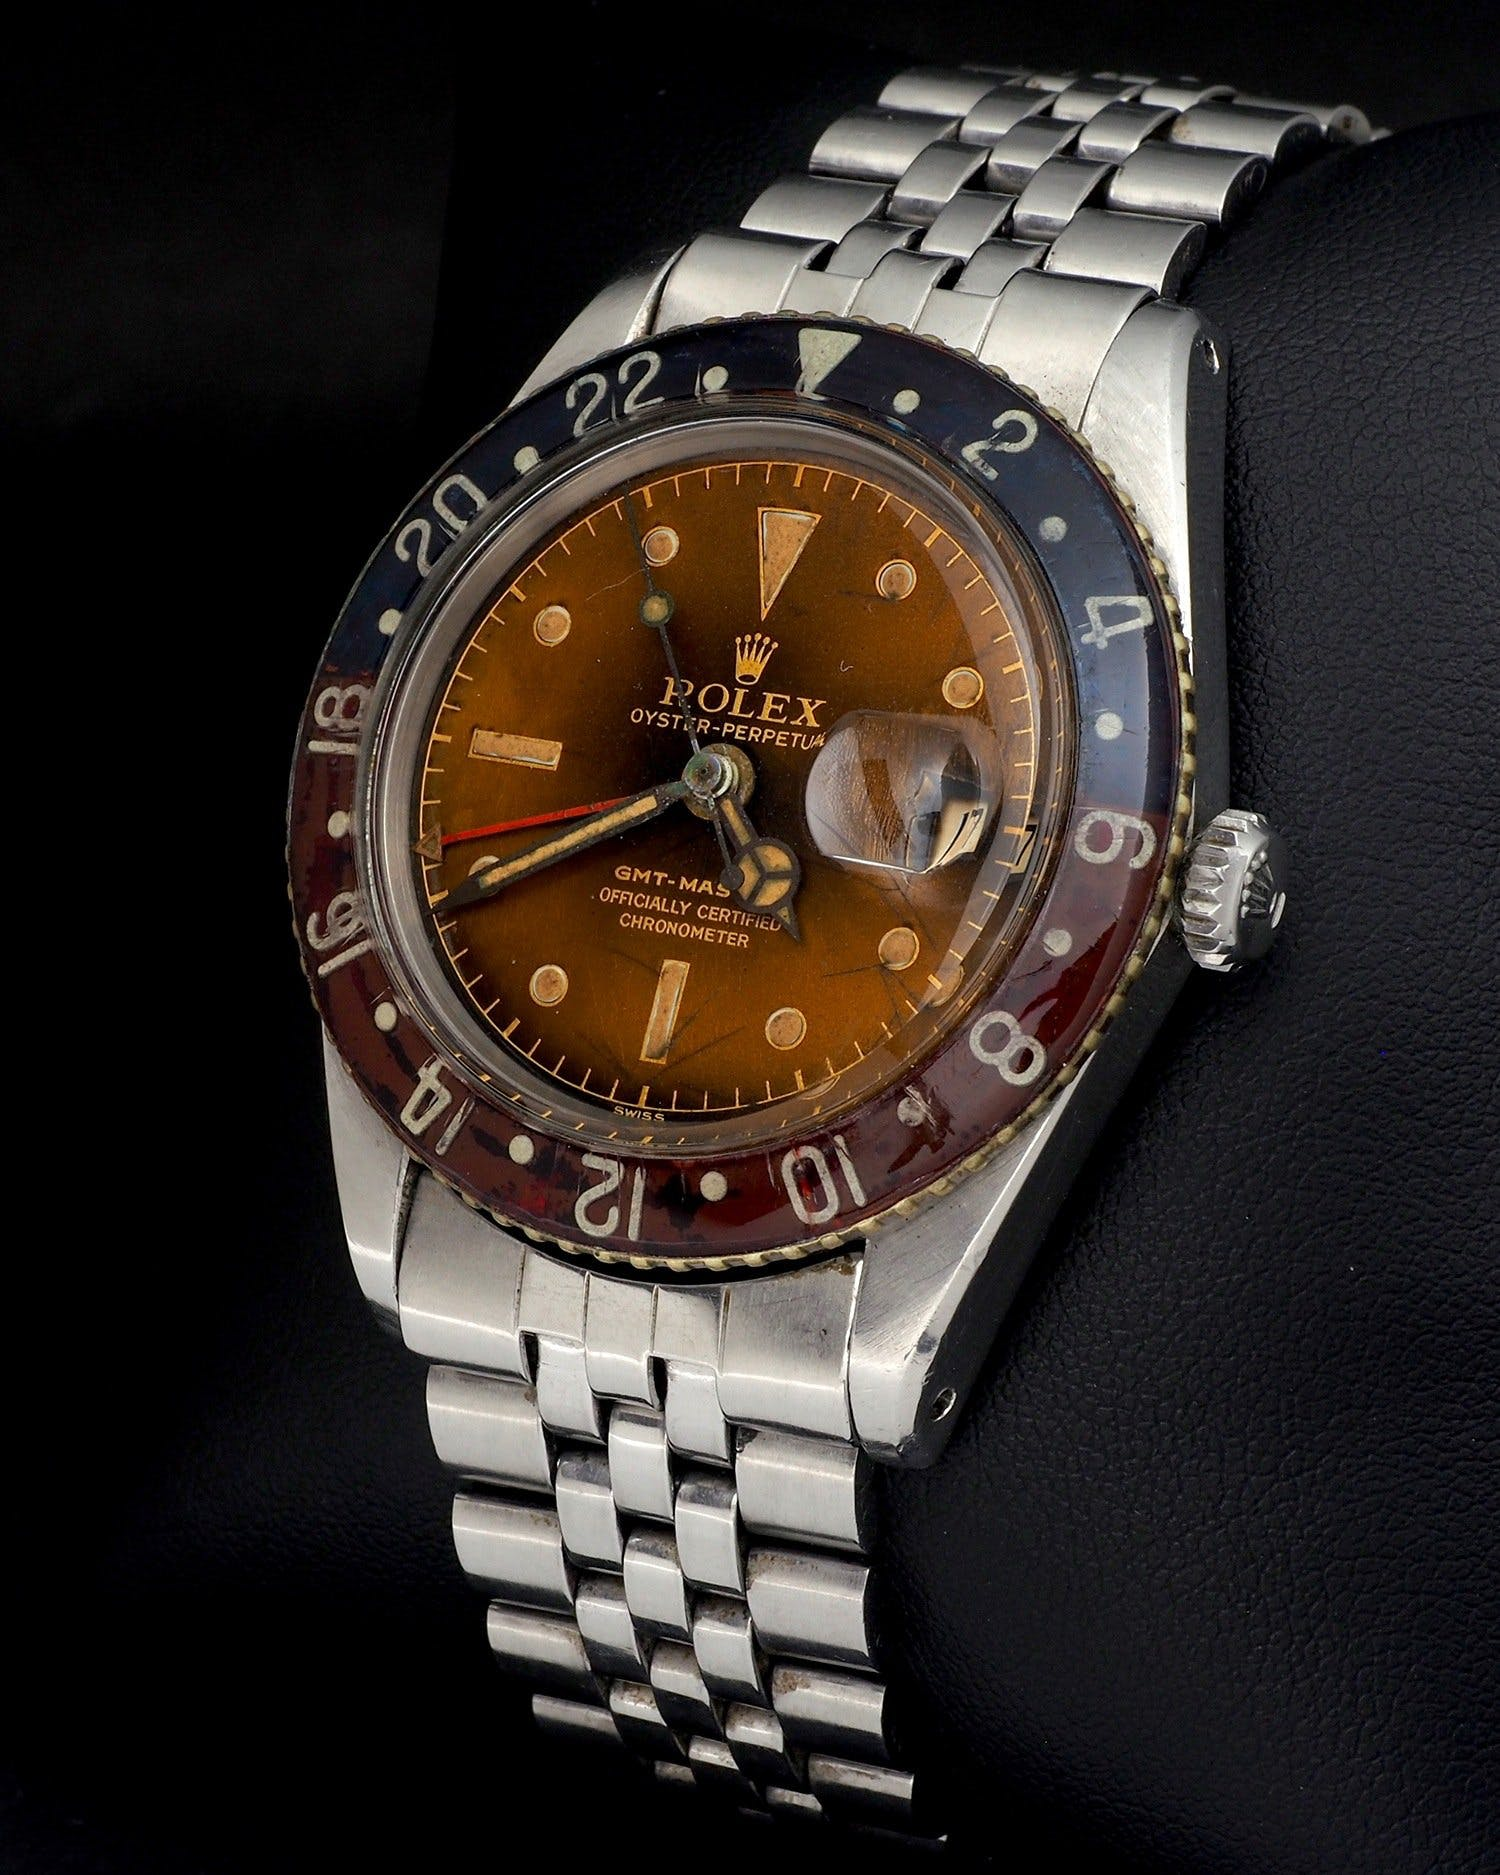 Rolex GMT-Master 6542 with a tropical dial